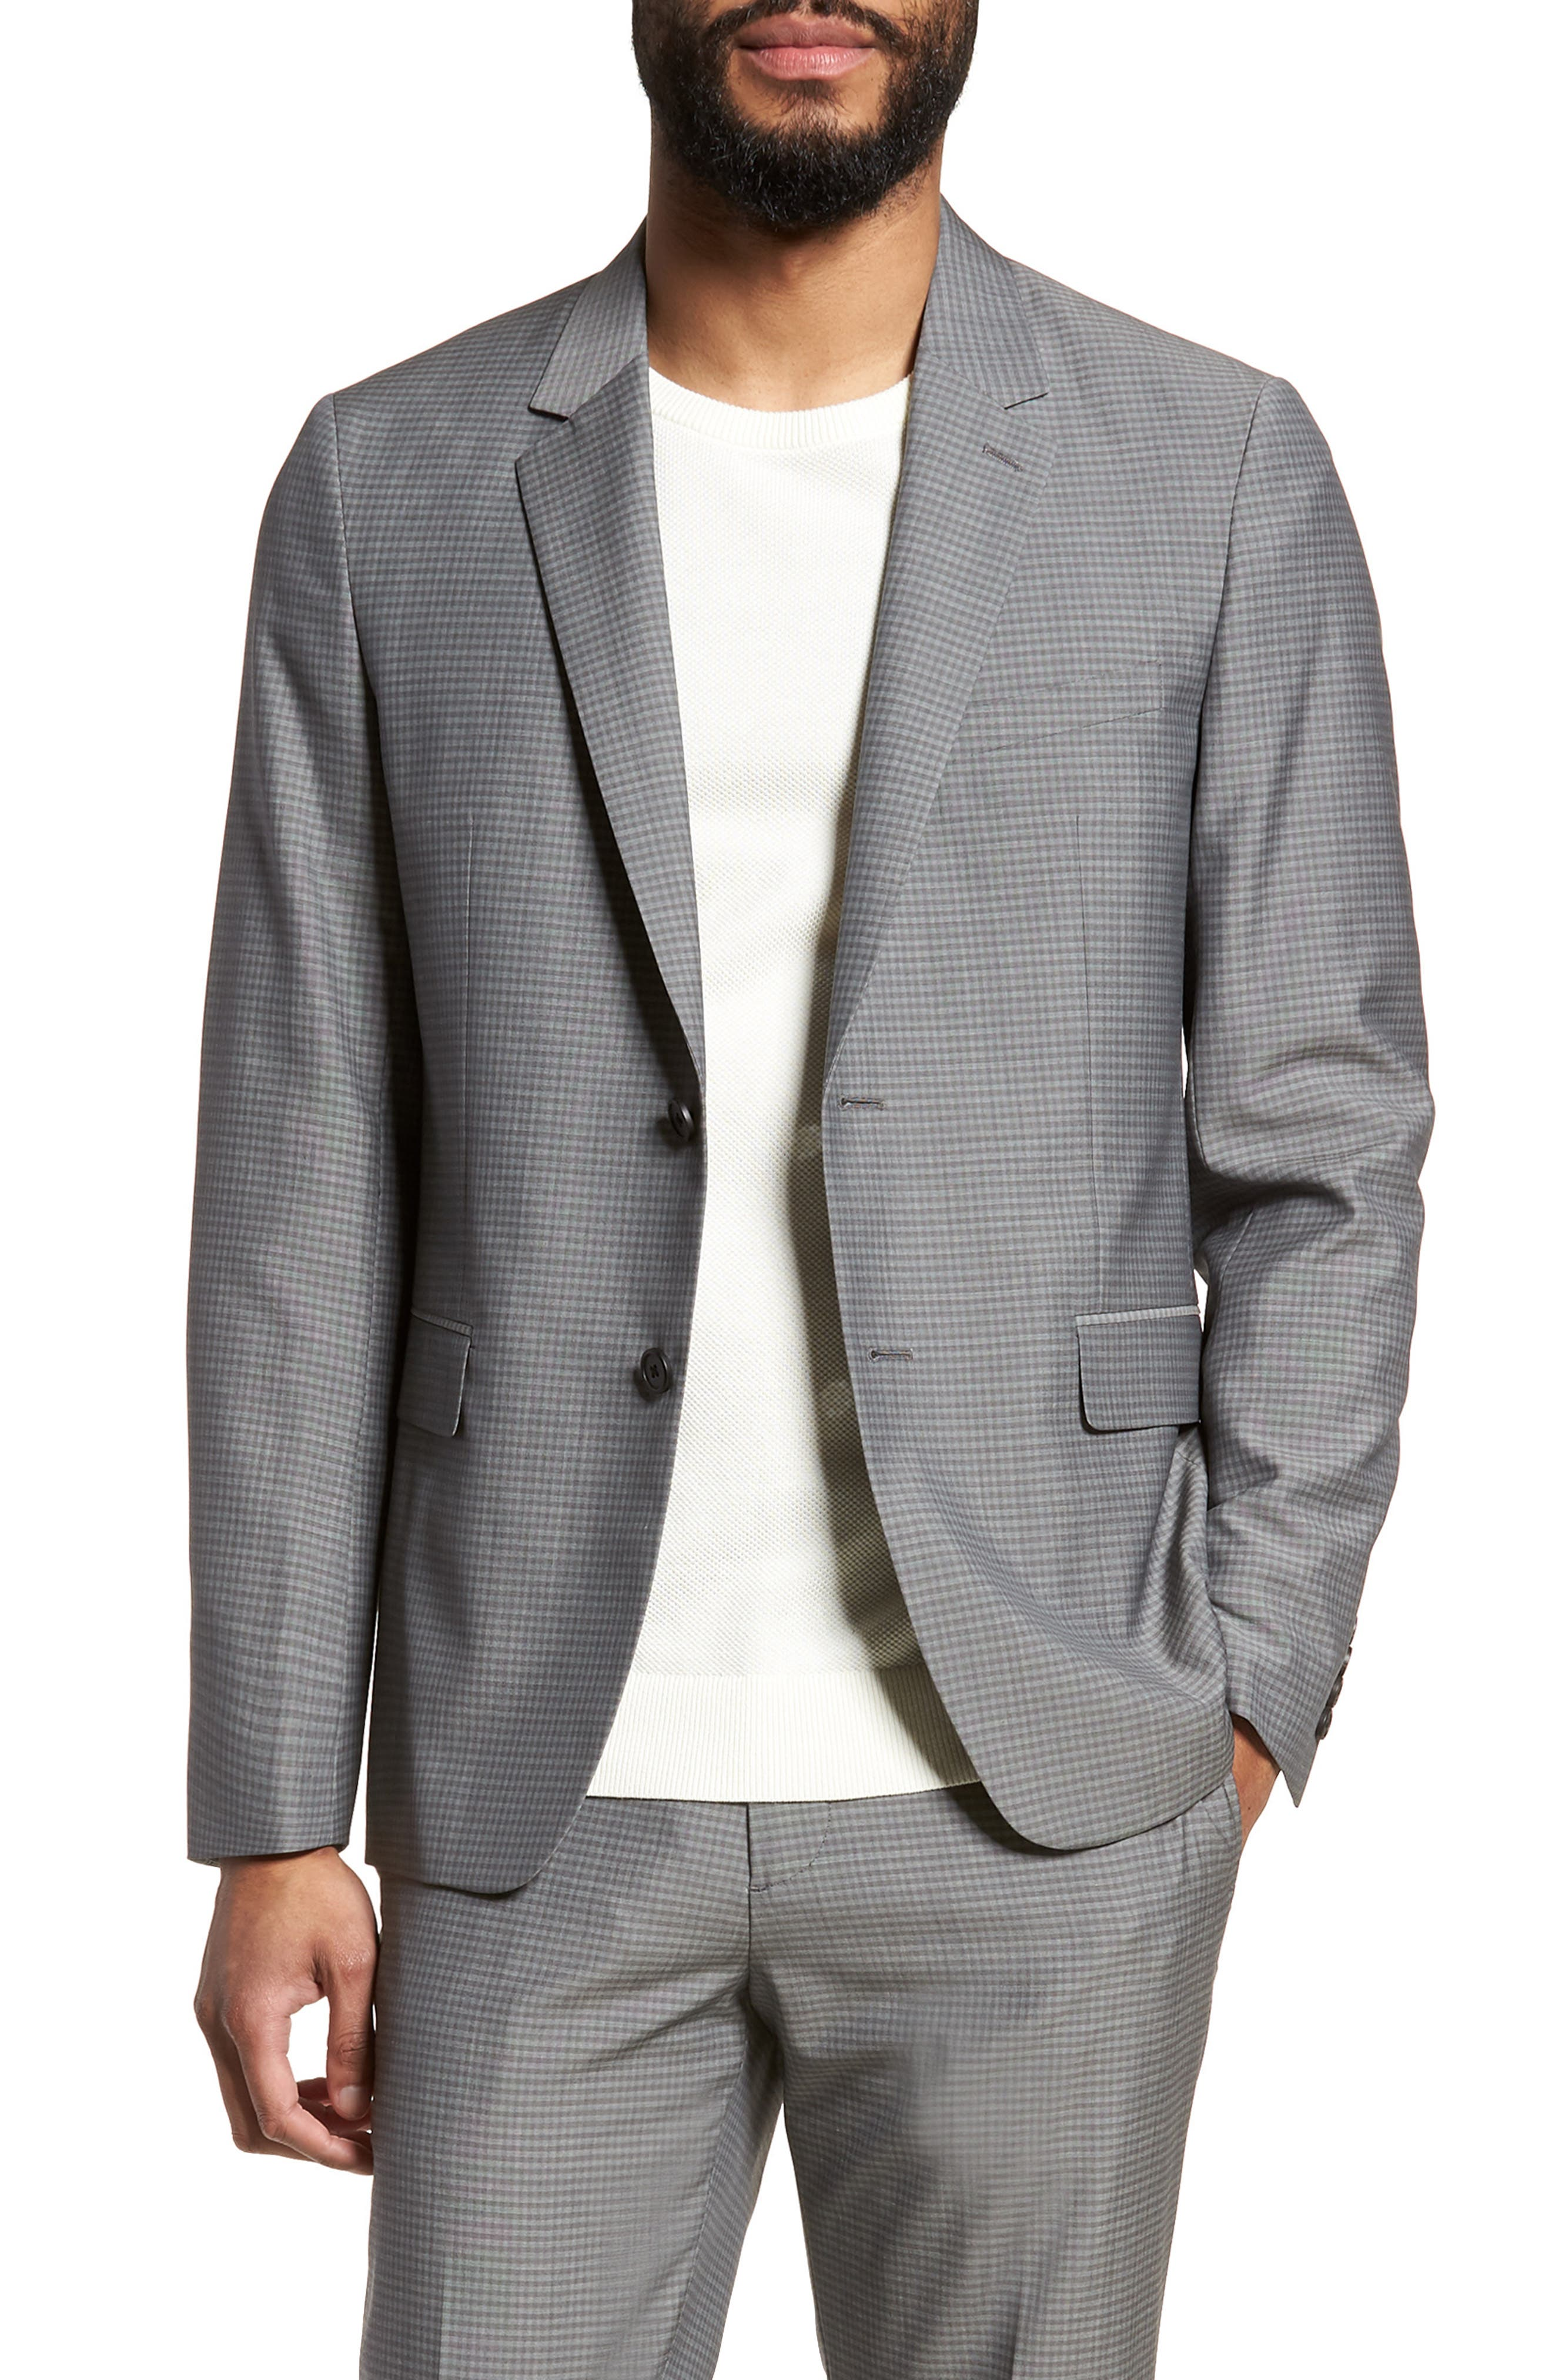 Alternate Image 1 Selected - Theory Gansevoort Trim Fit Check Wool Sport Coat